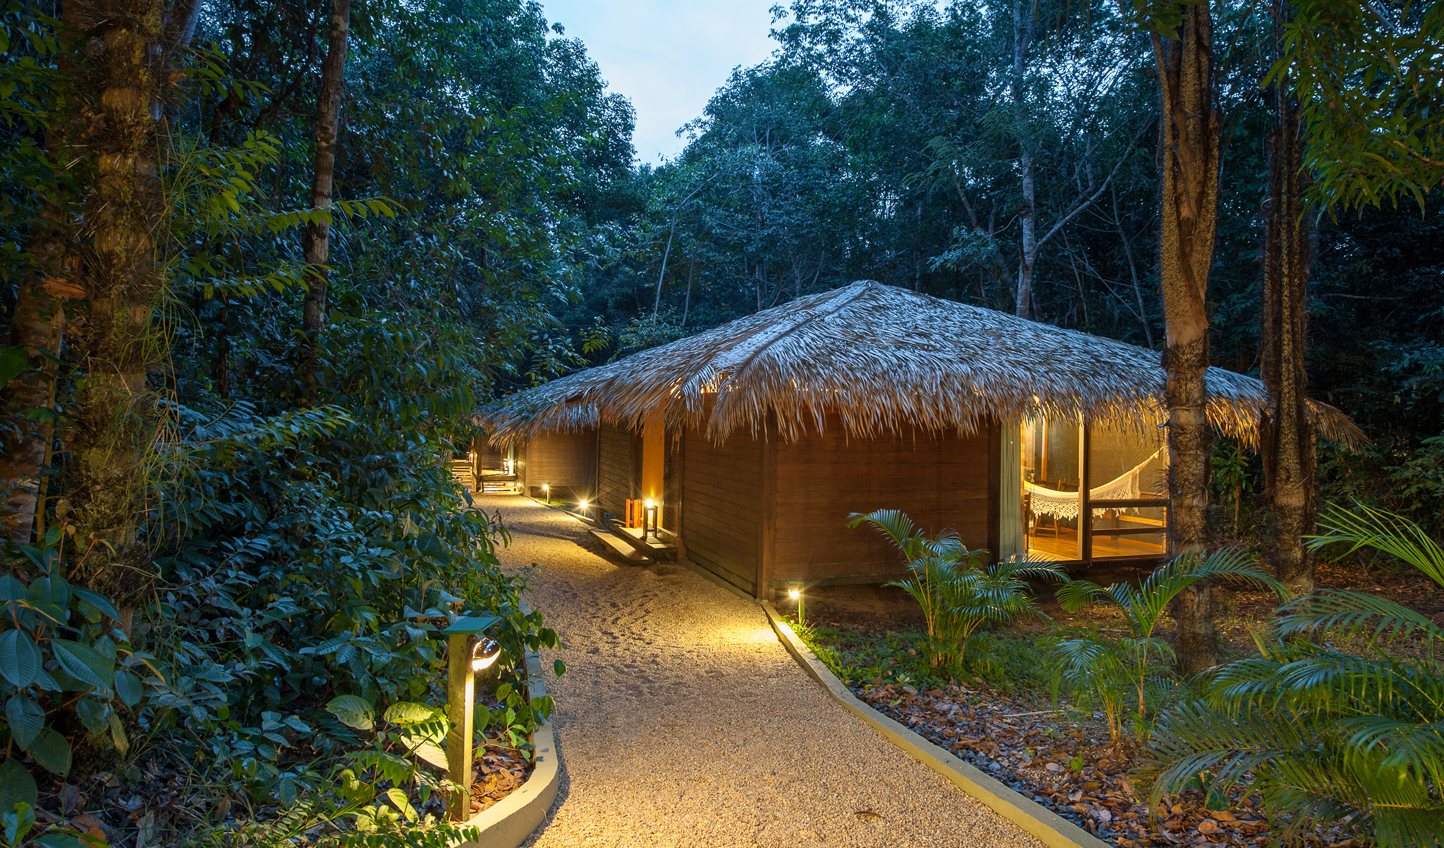 Make your way to your bungalow in the middle of the jungle